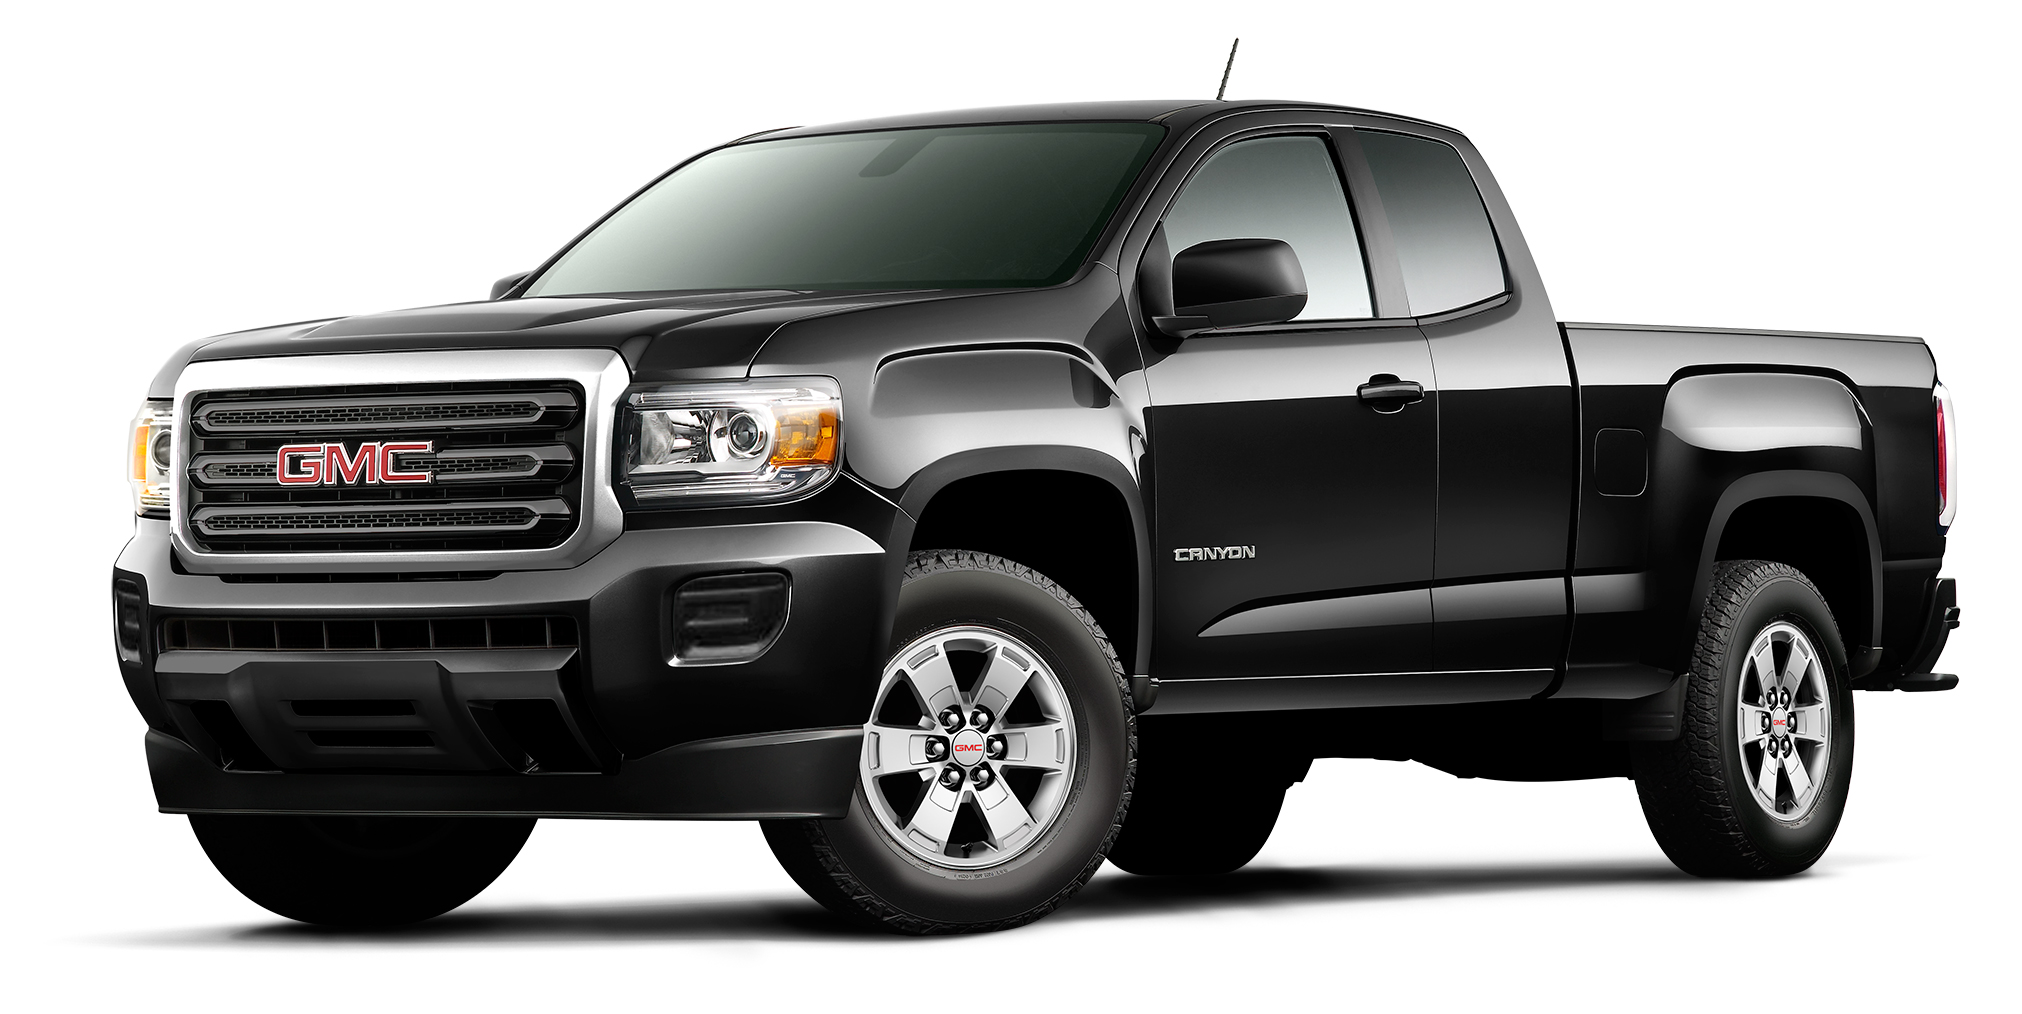 2017 gmc canyon winnipeg gmc canyon details specs gauthier. Black Bedroom Furniture Sets. Home Design Ideas